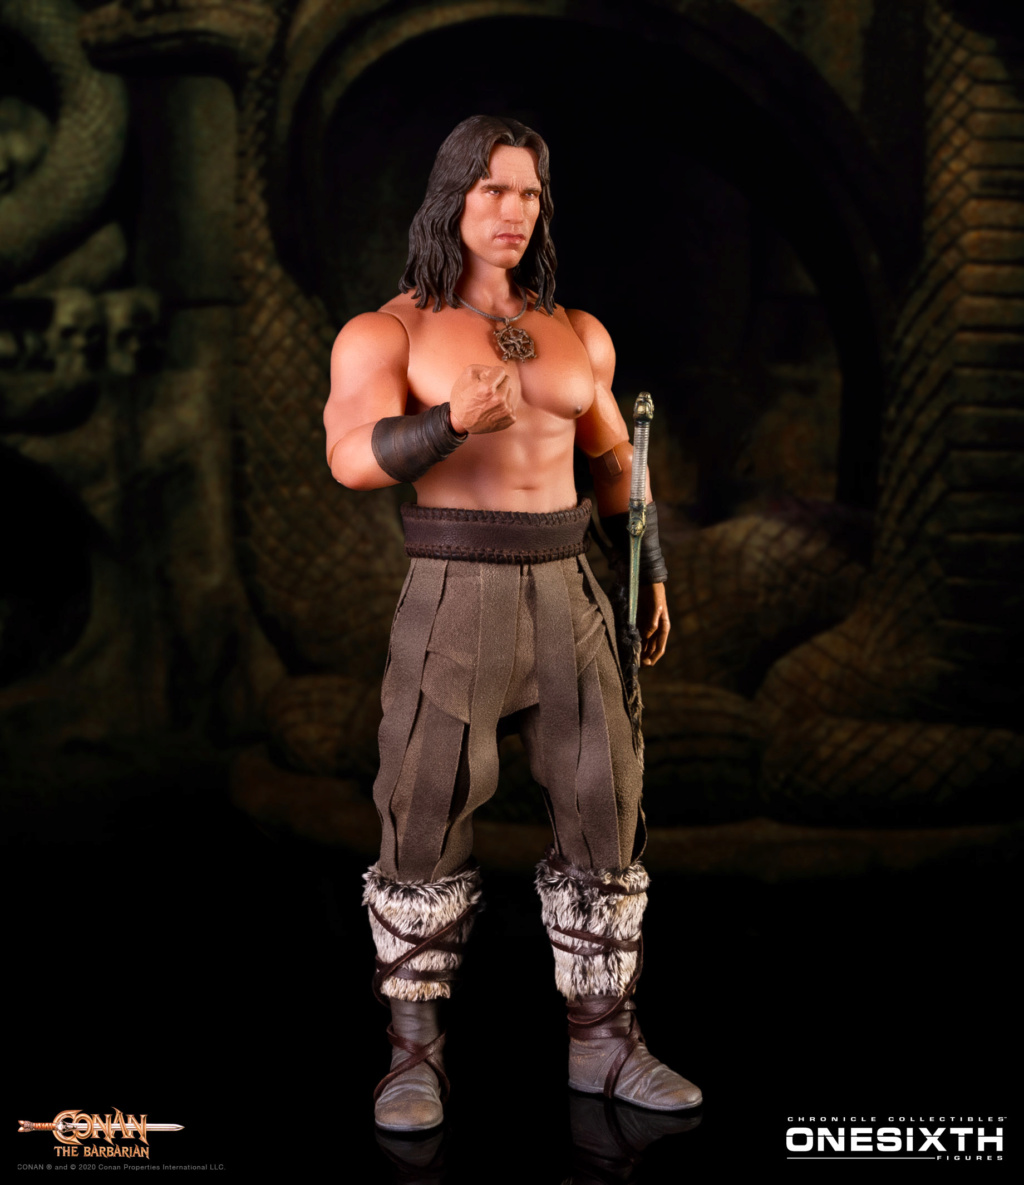 NEW PRODUCT: Chronicle Collectibles: OneSixth Conan the Barbarian Figure Chroni14